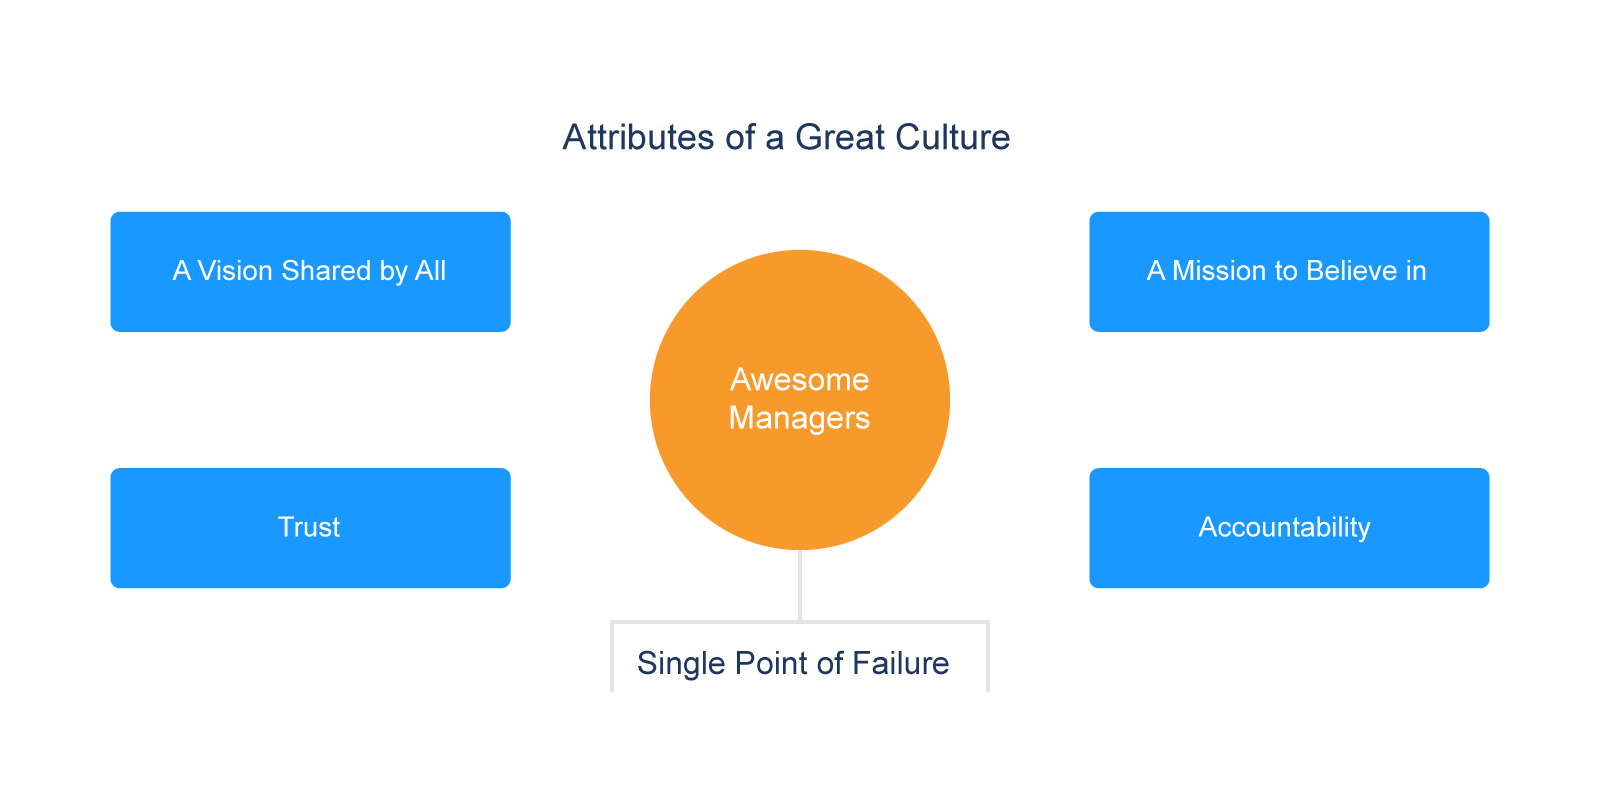 Attributes of a Great Culture